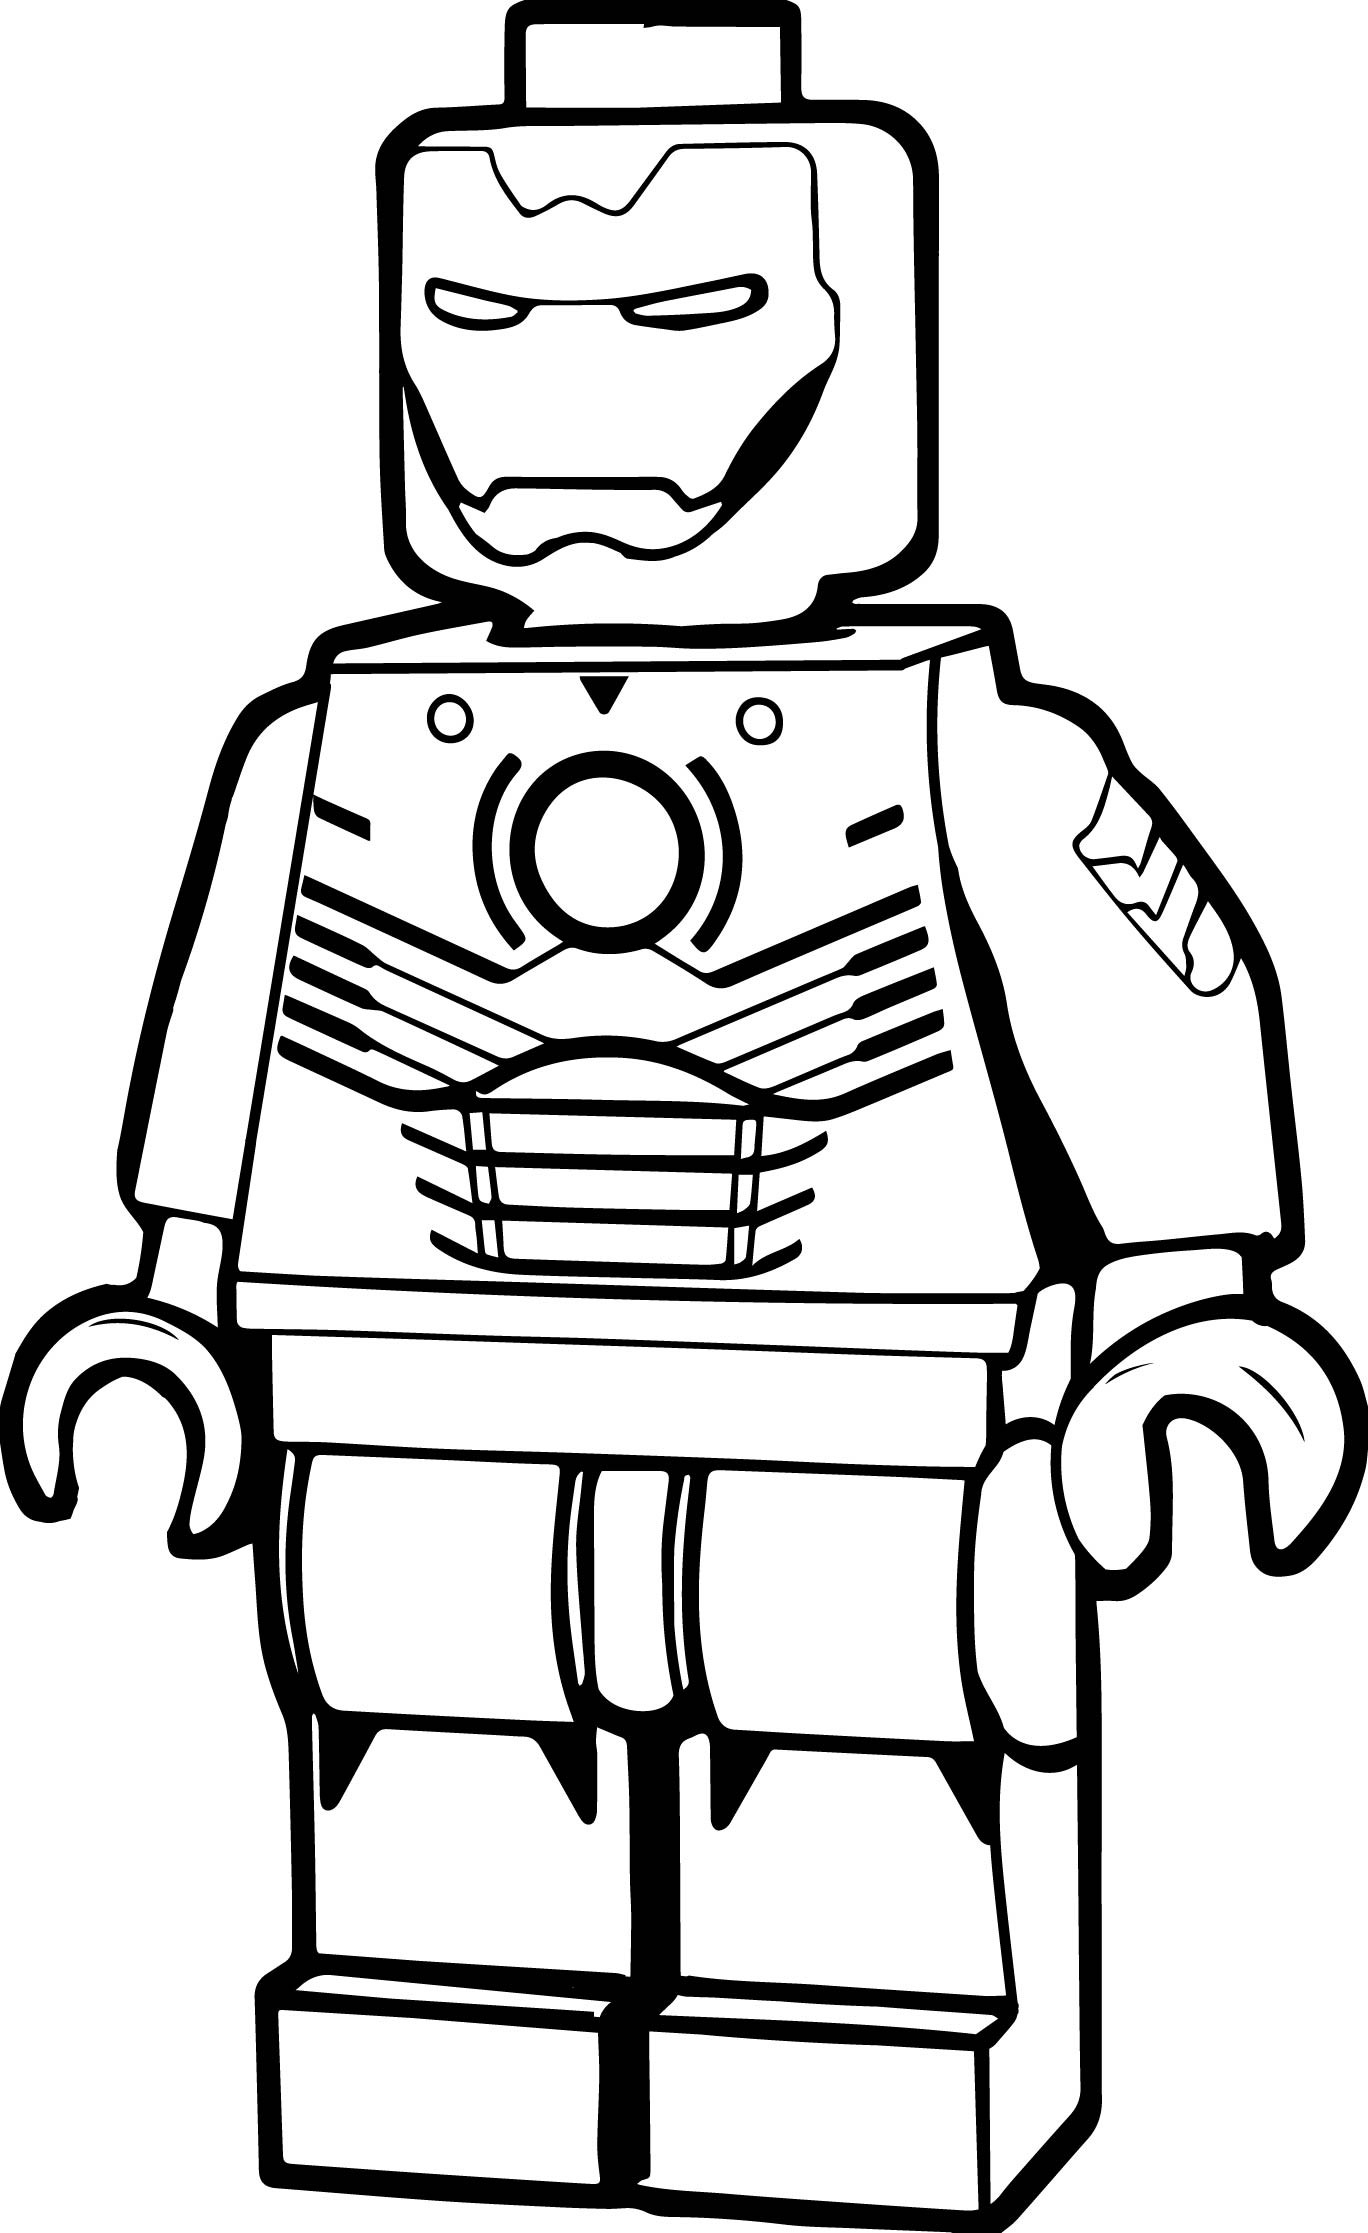 Lego Iron Man Coloring Pages Collection Free Coloring Books Download Of Lego Dimensions Coloring Pages Collection Page Ninja Grig3 Printable